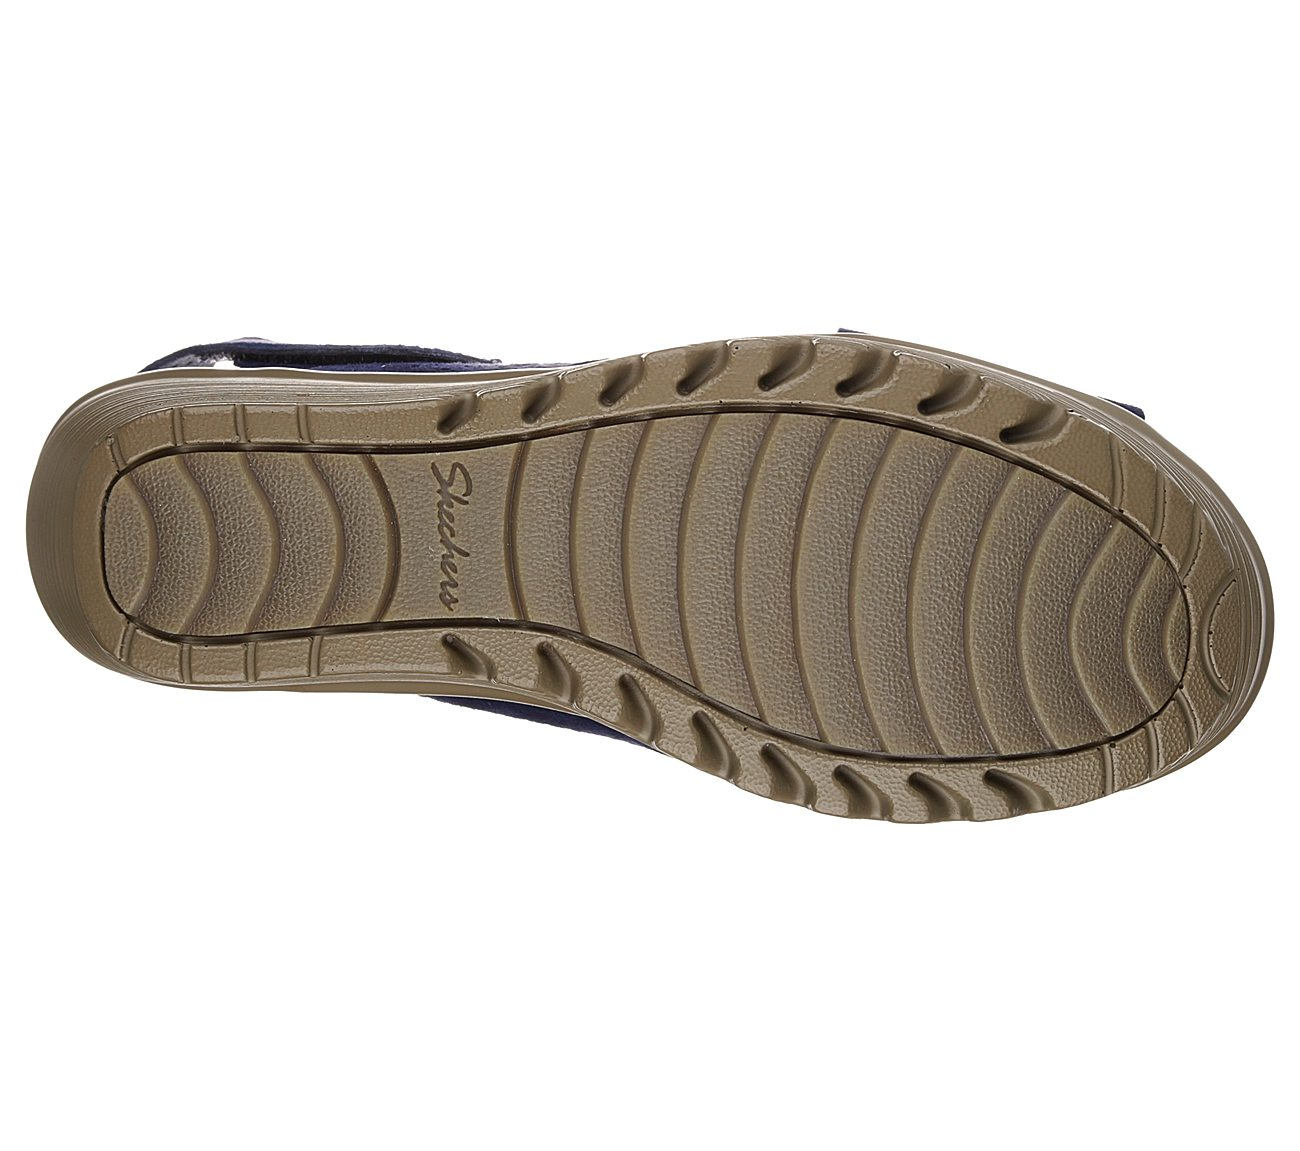 0229322b7d Buy SKECHERS Parallel - Infrastructure Cali Shoes only $38.50